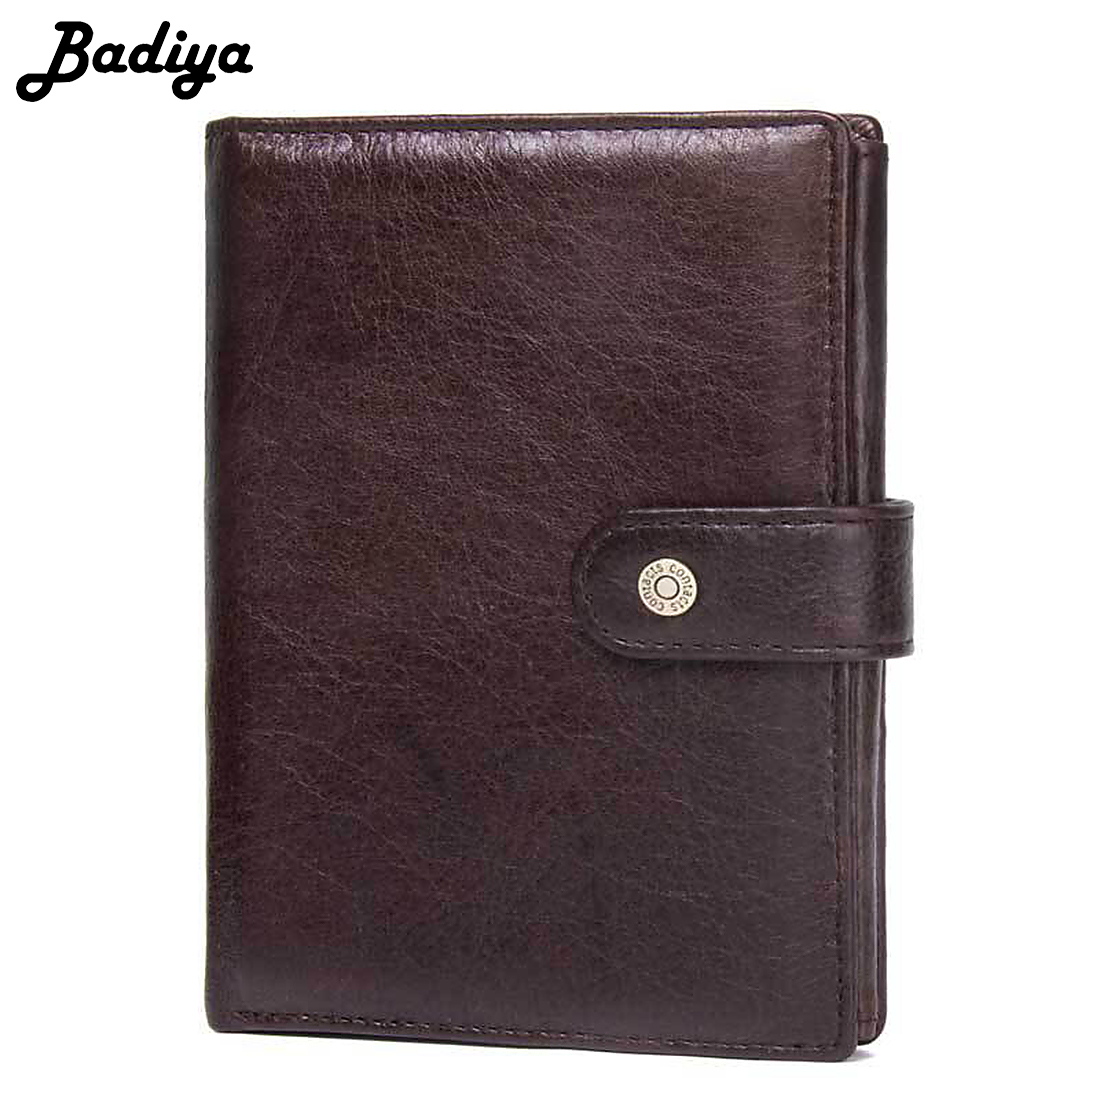 Vintage Men Genuine Leather Wallet Hasp Open Large Capacity Men Purse Card Holder Bifold Short Purse Clutch Coin Pocket Wallets